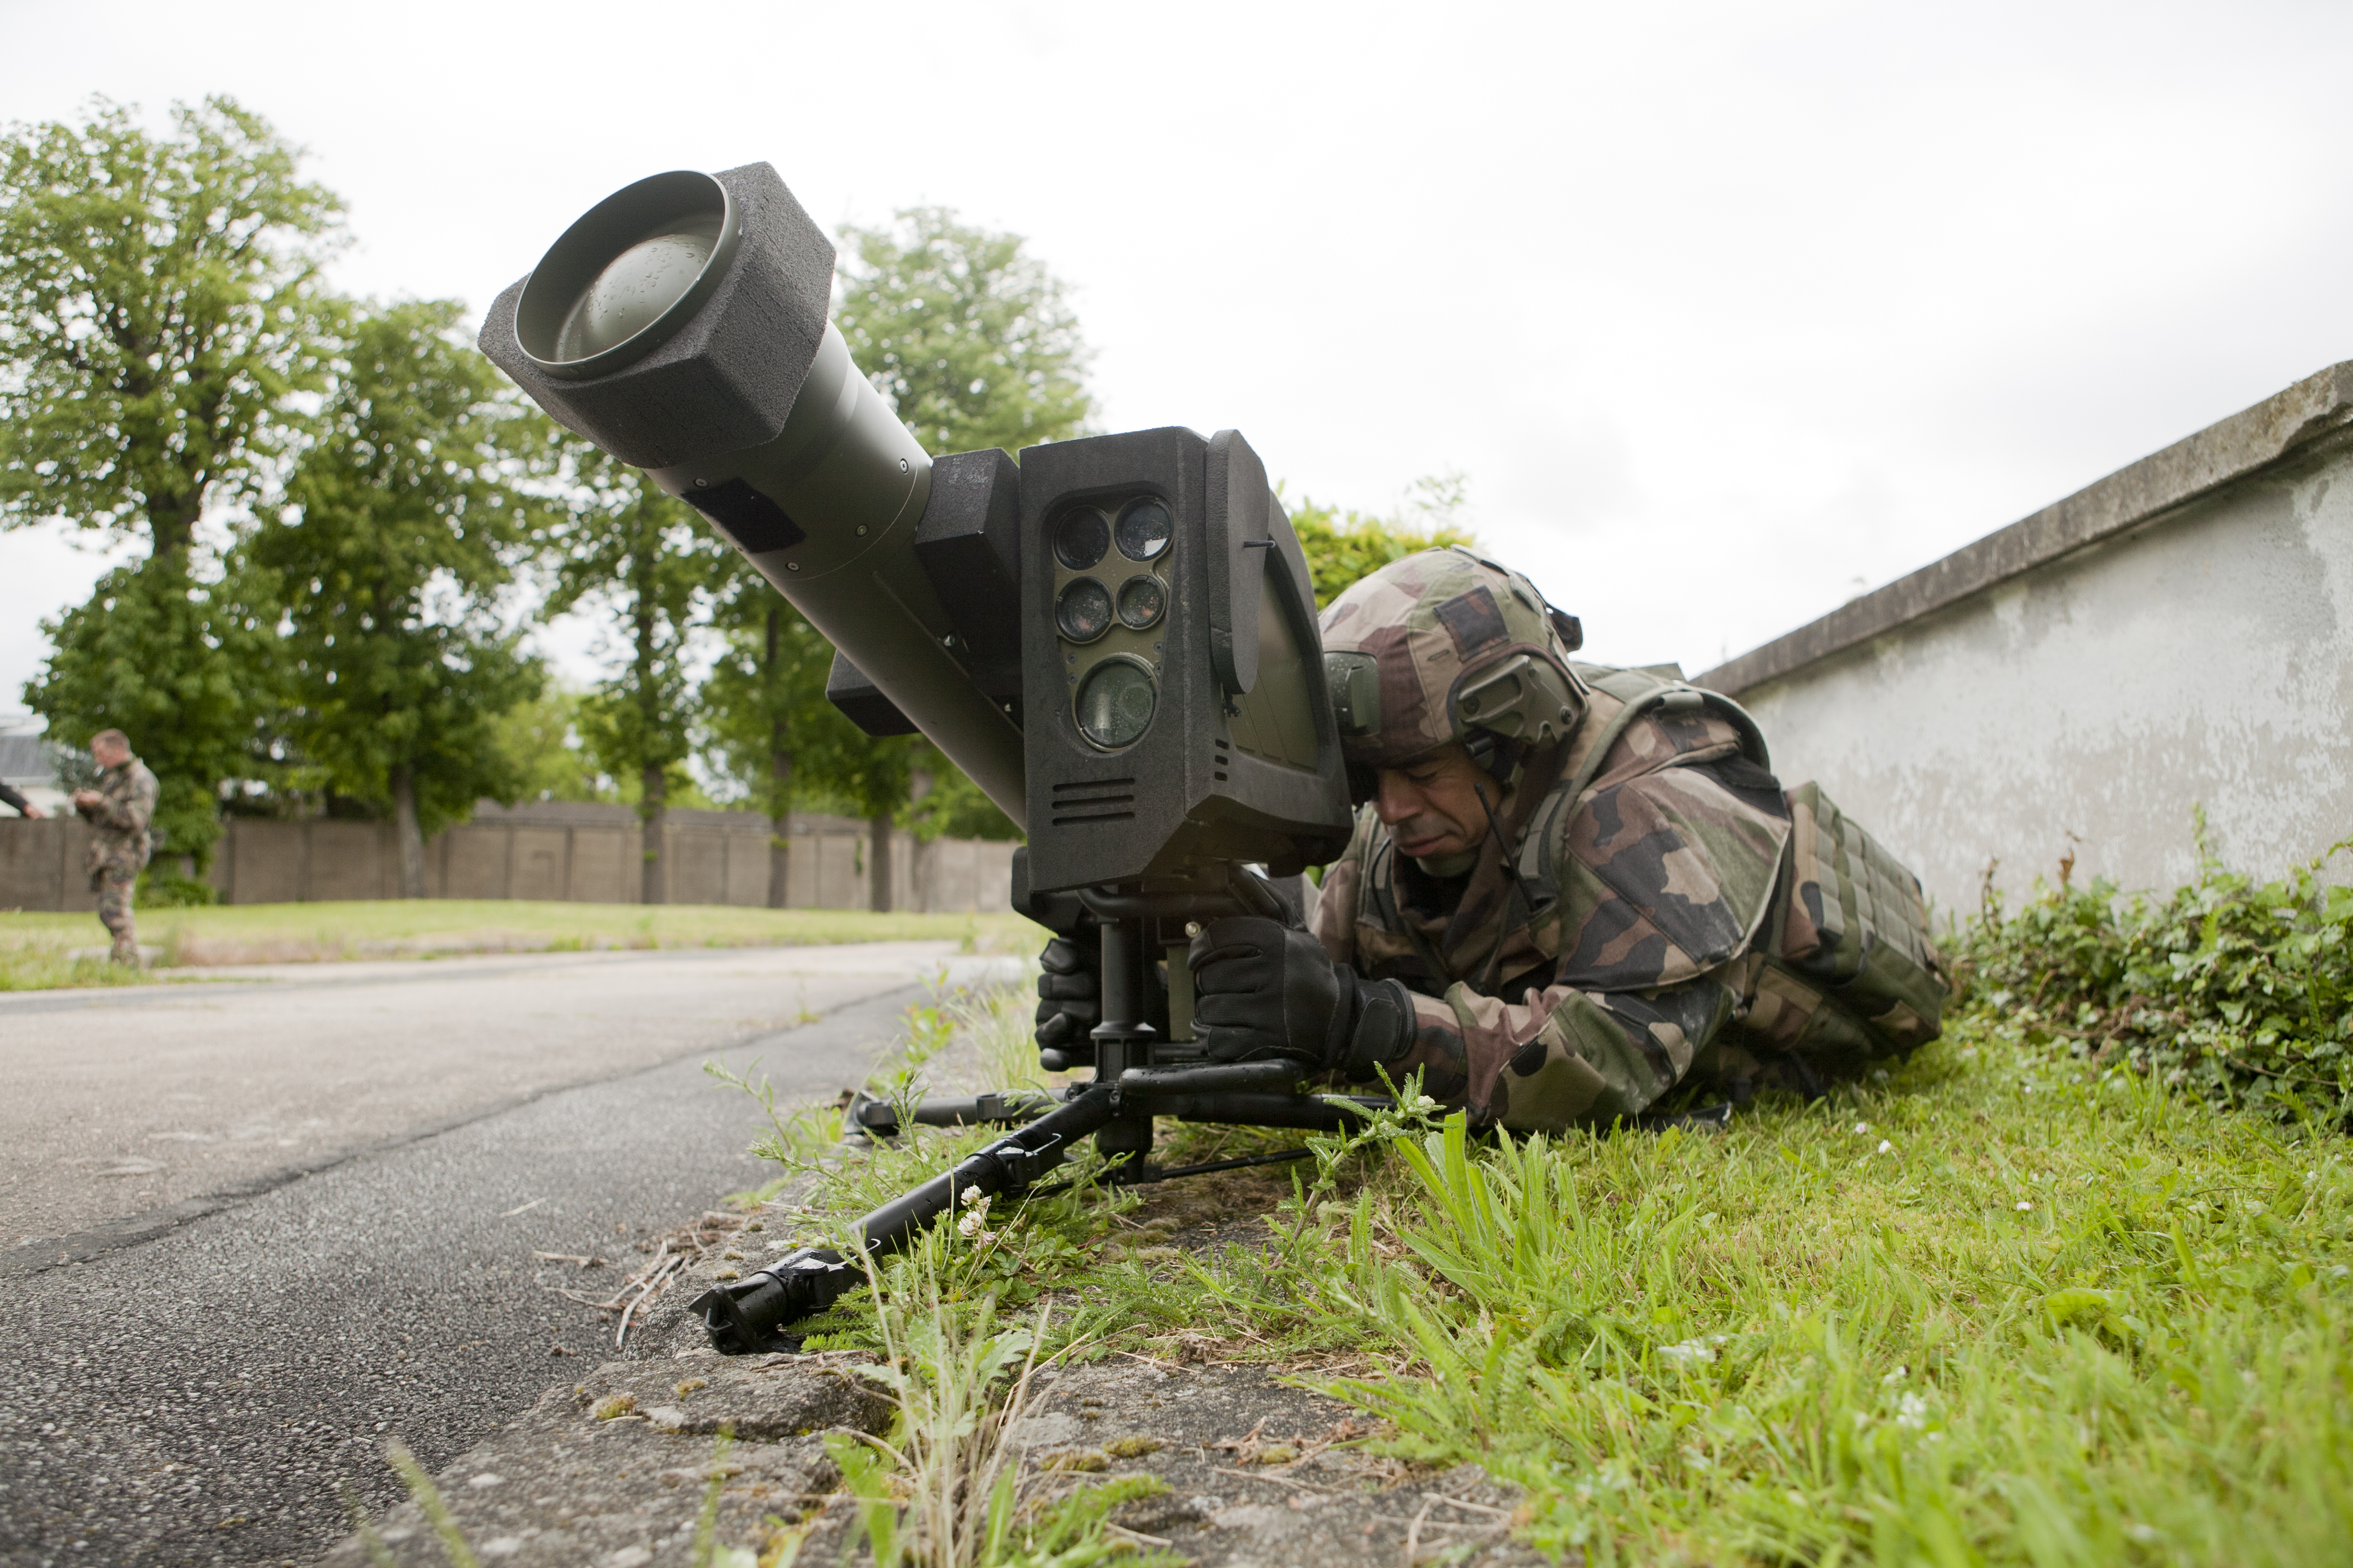 MMP used by a soldier during test-operation in Satory, France